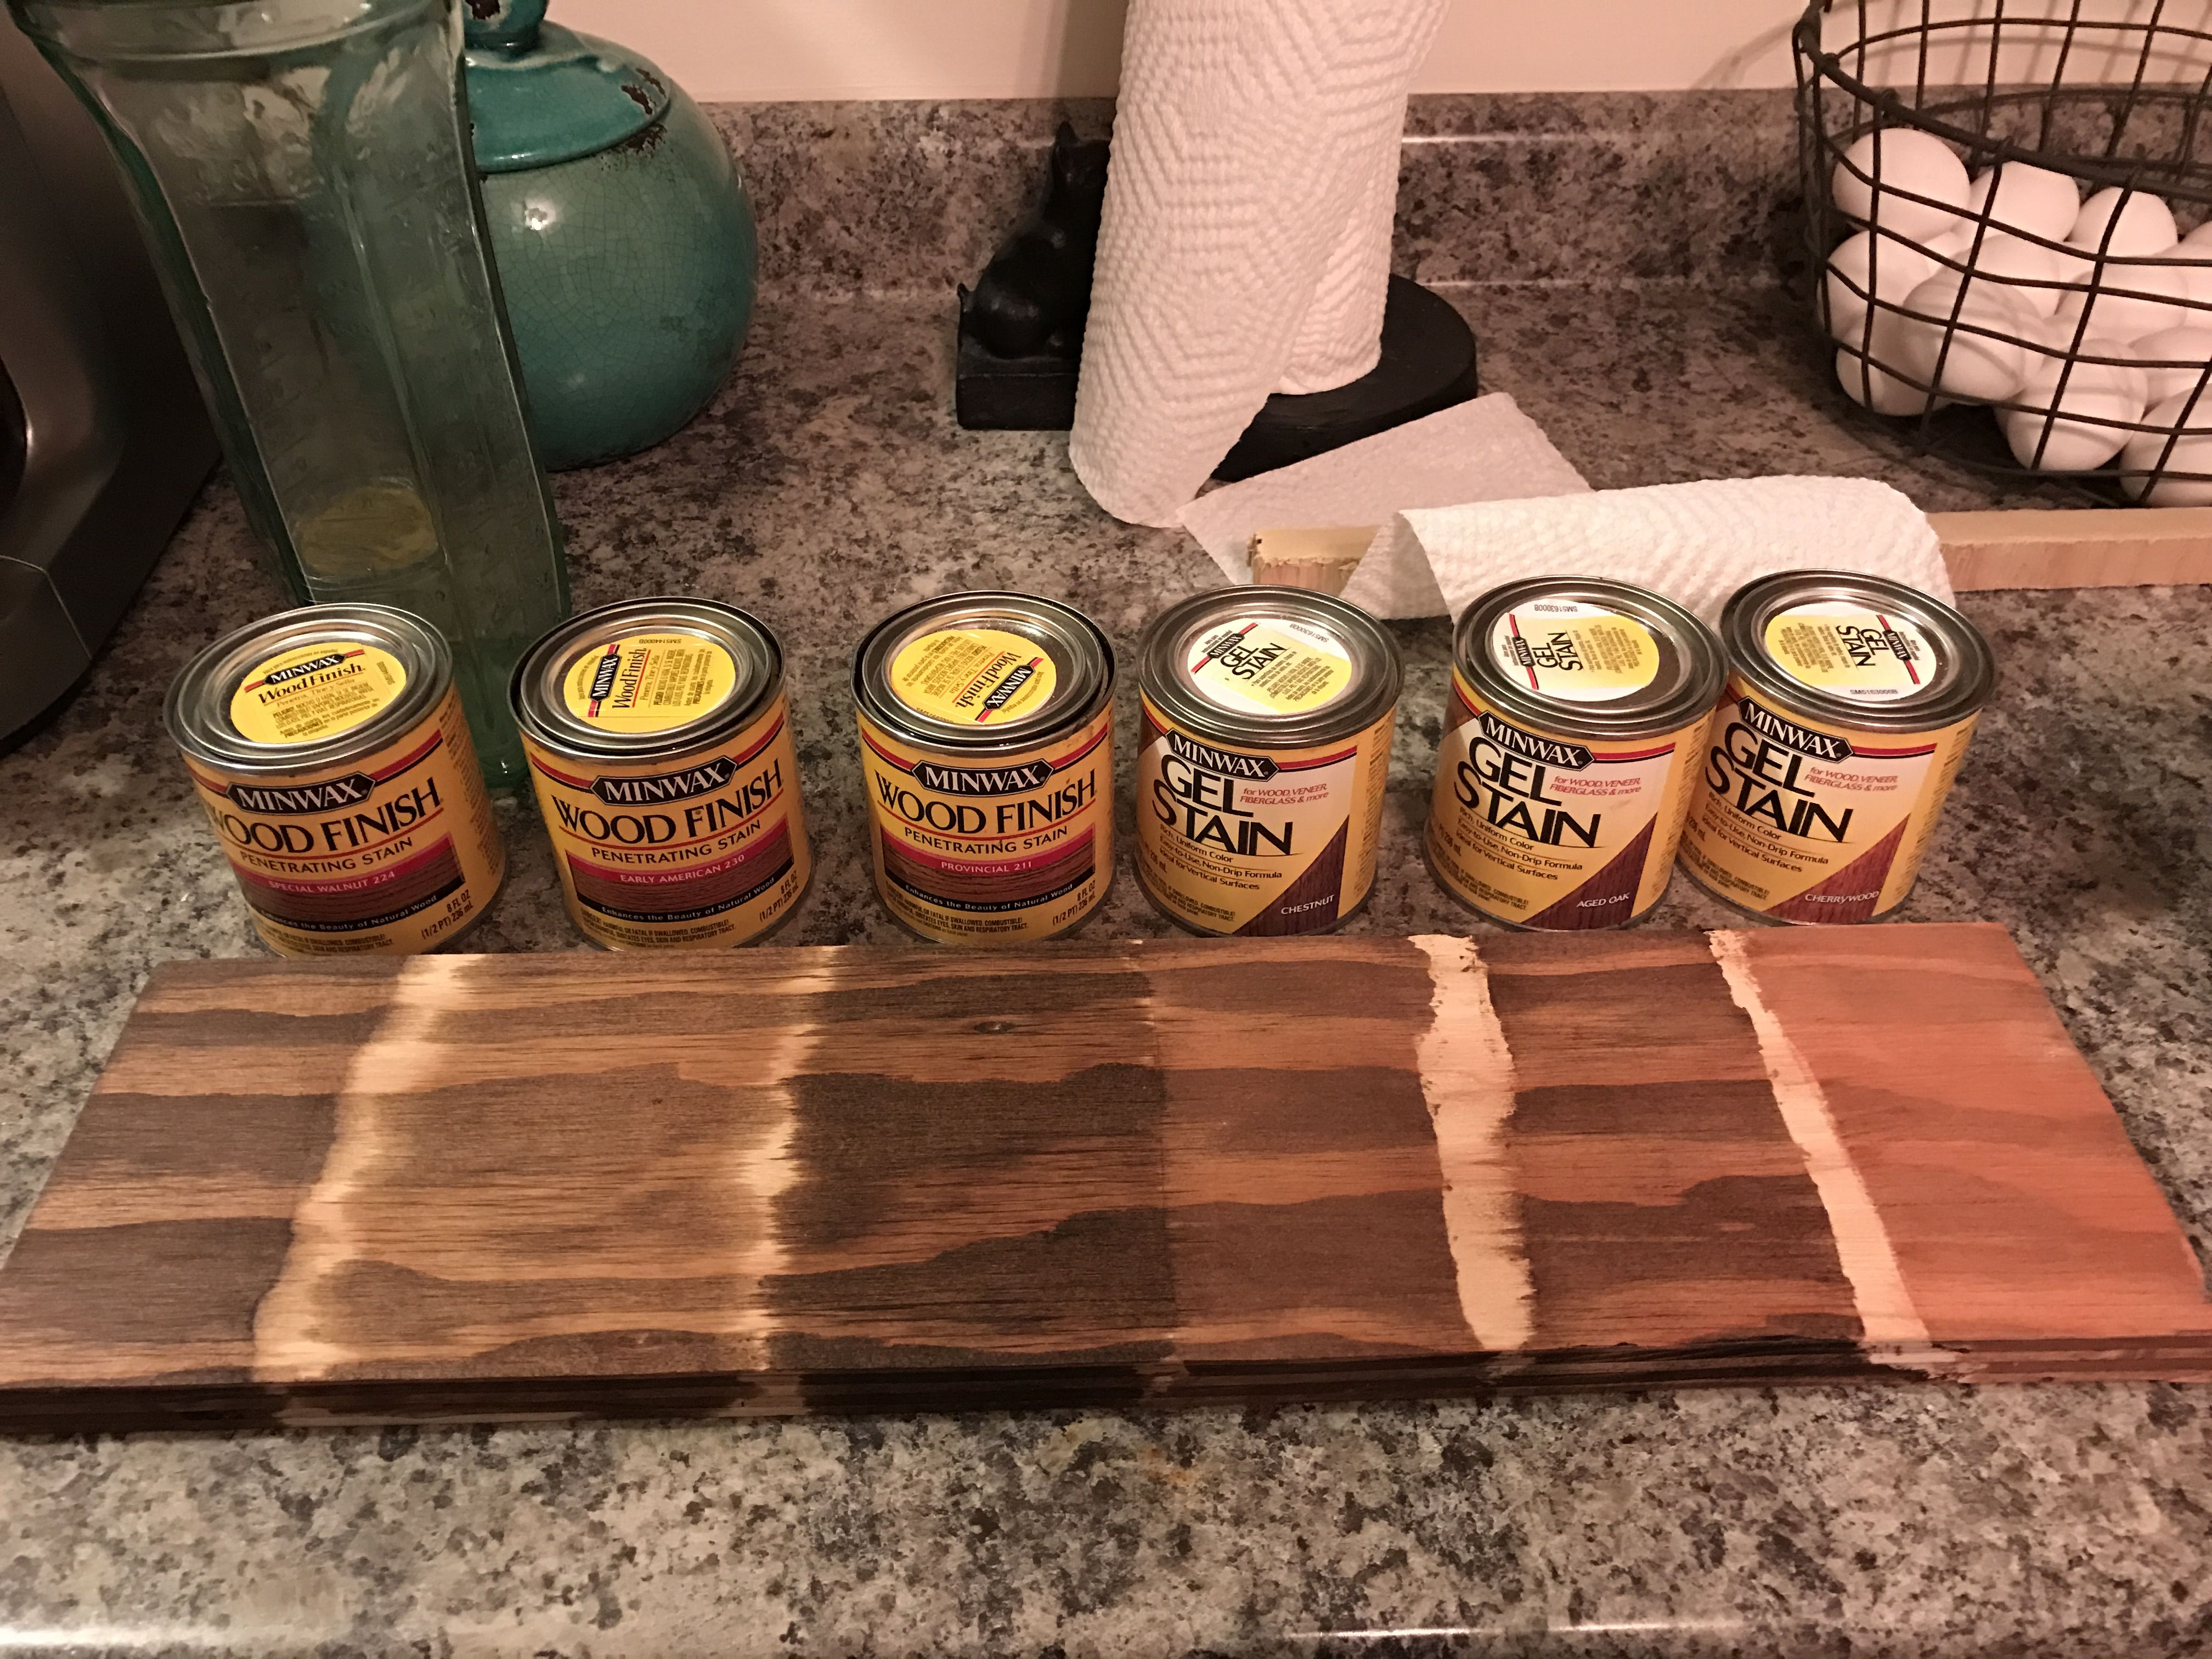 Minwax Stains One Coat On Pine Plywood From Left To Right Special Walnut Early American Provincial Che Staining Wood Minwax Stain Colors Wood Stain Colors